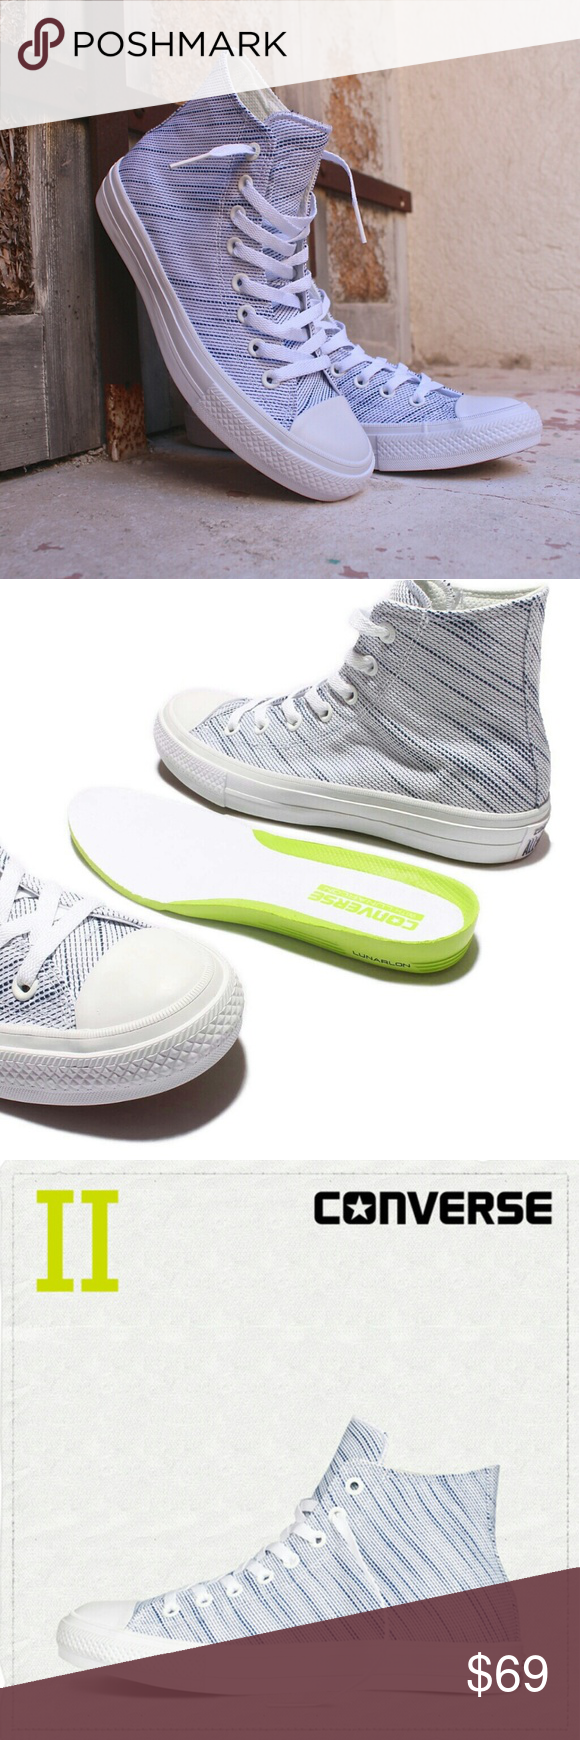 Converse Lunarlon Insole For Sale Nwt Converse Chuck Ii 2 High Top Nike Lunarlon Nwt With Images